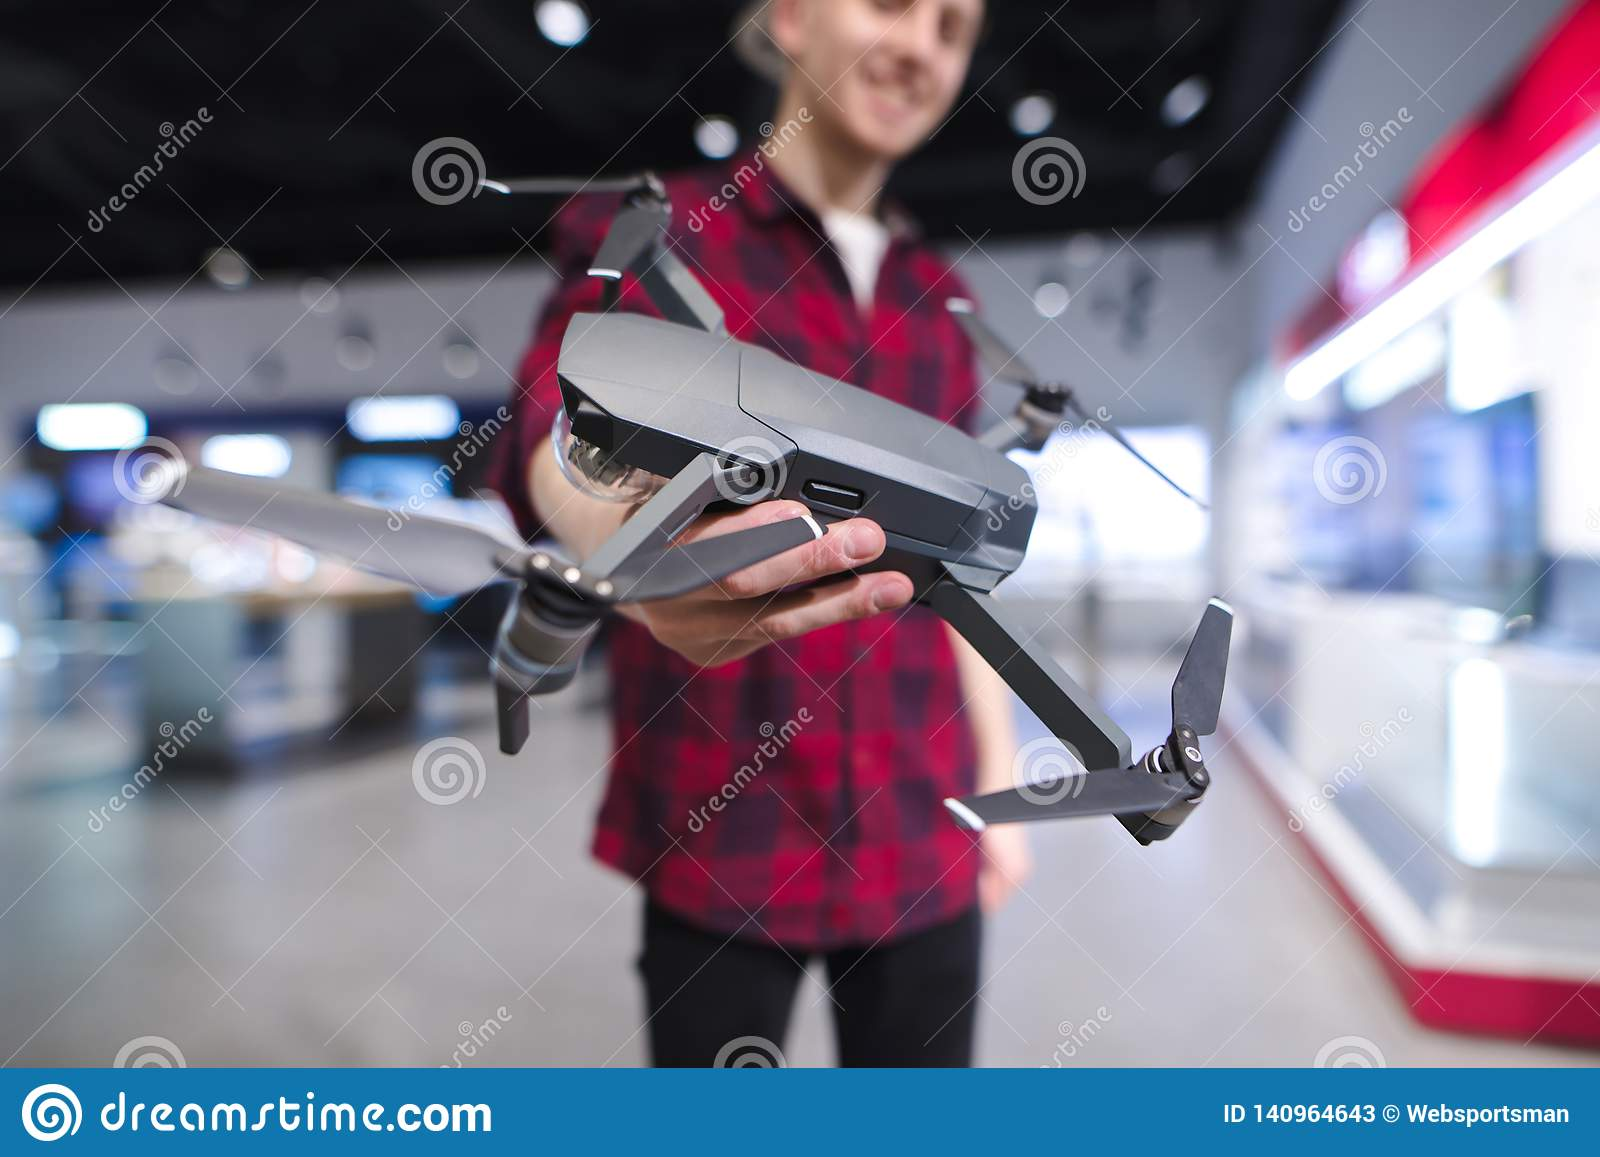 positive young man with a quadcopter in his hands is in the drones store. Buy a dron at an electronics store